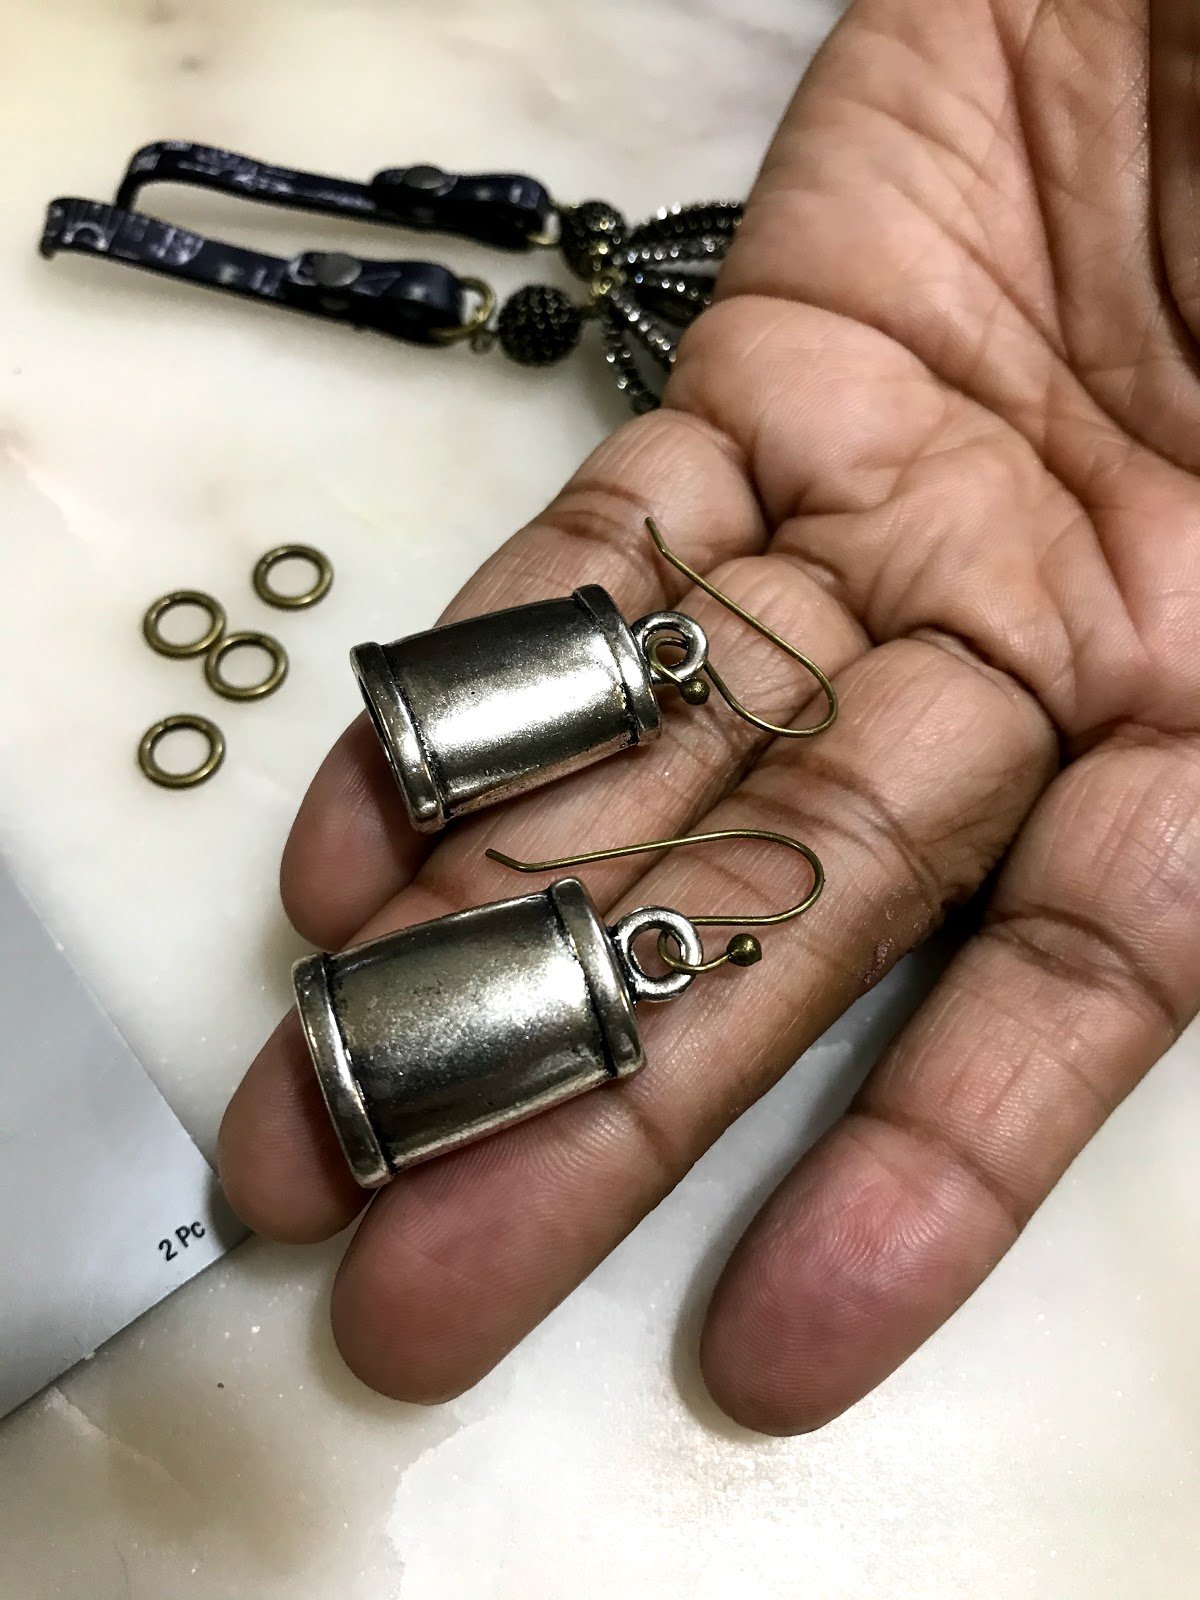 Image: end caps and jewelry pieces used to make earrings for quick earrings